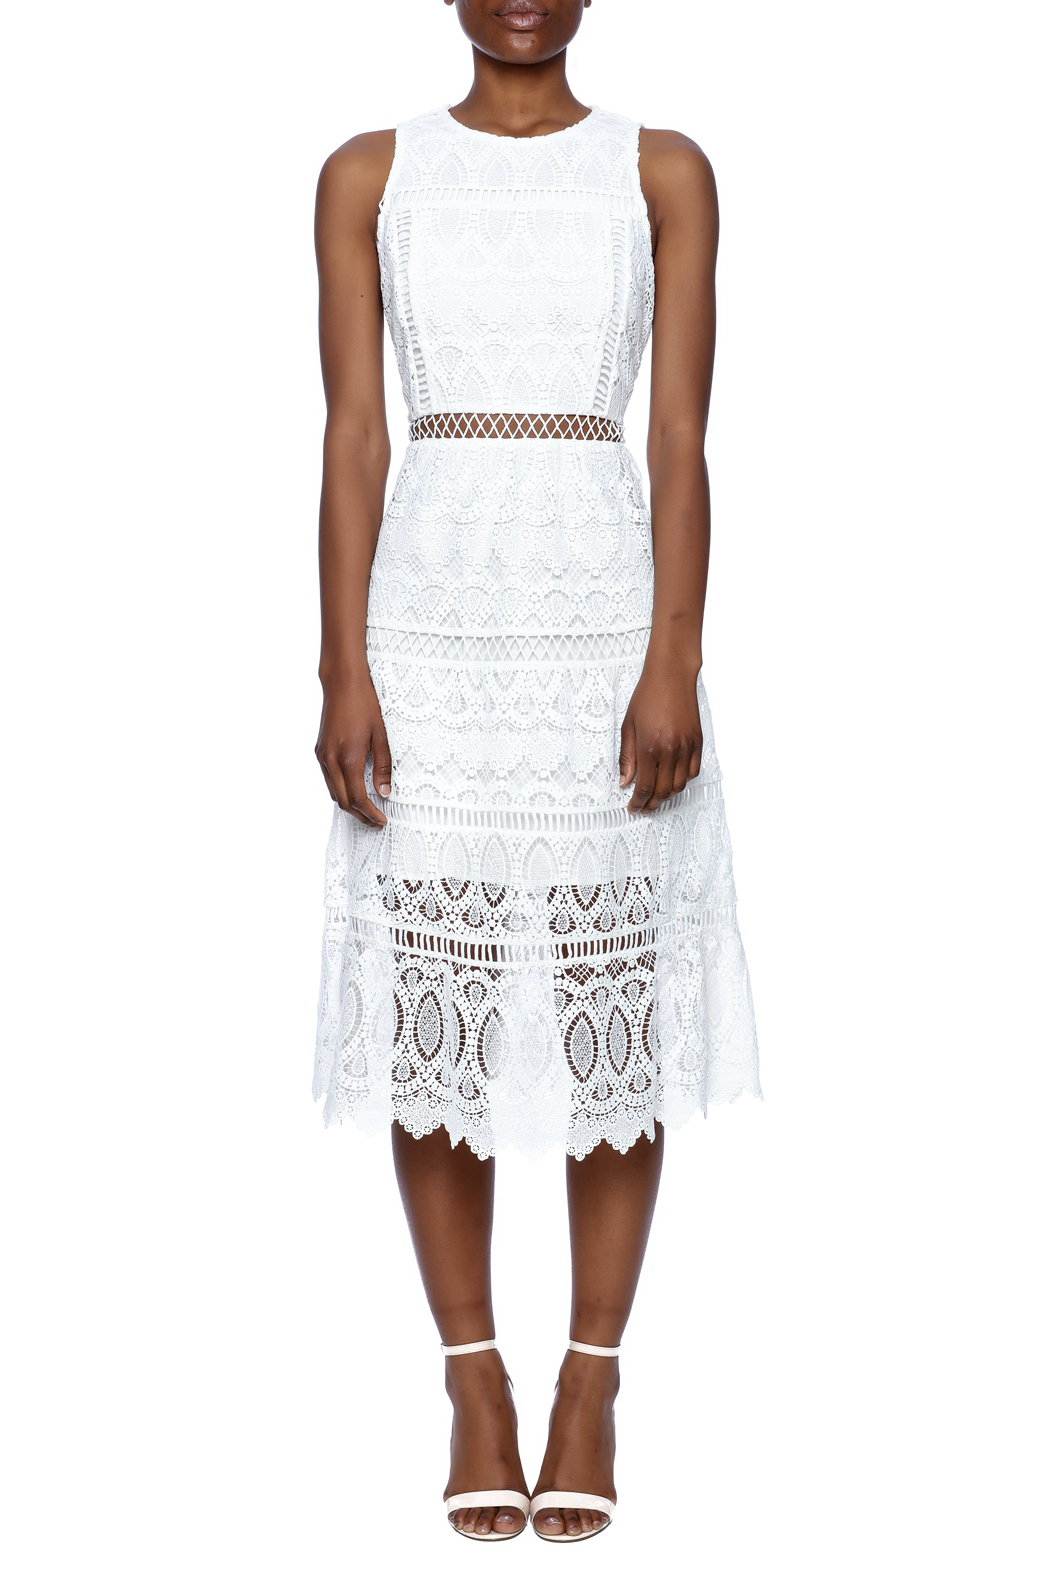 J.O.A. White Lace Dress - Main Image